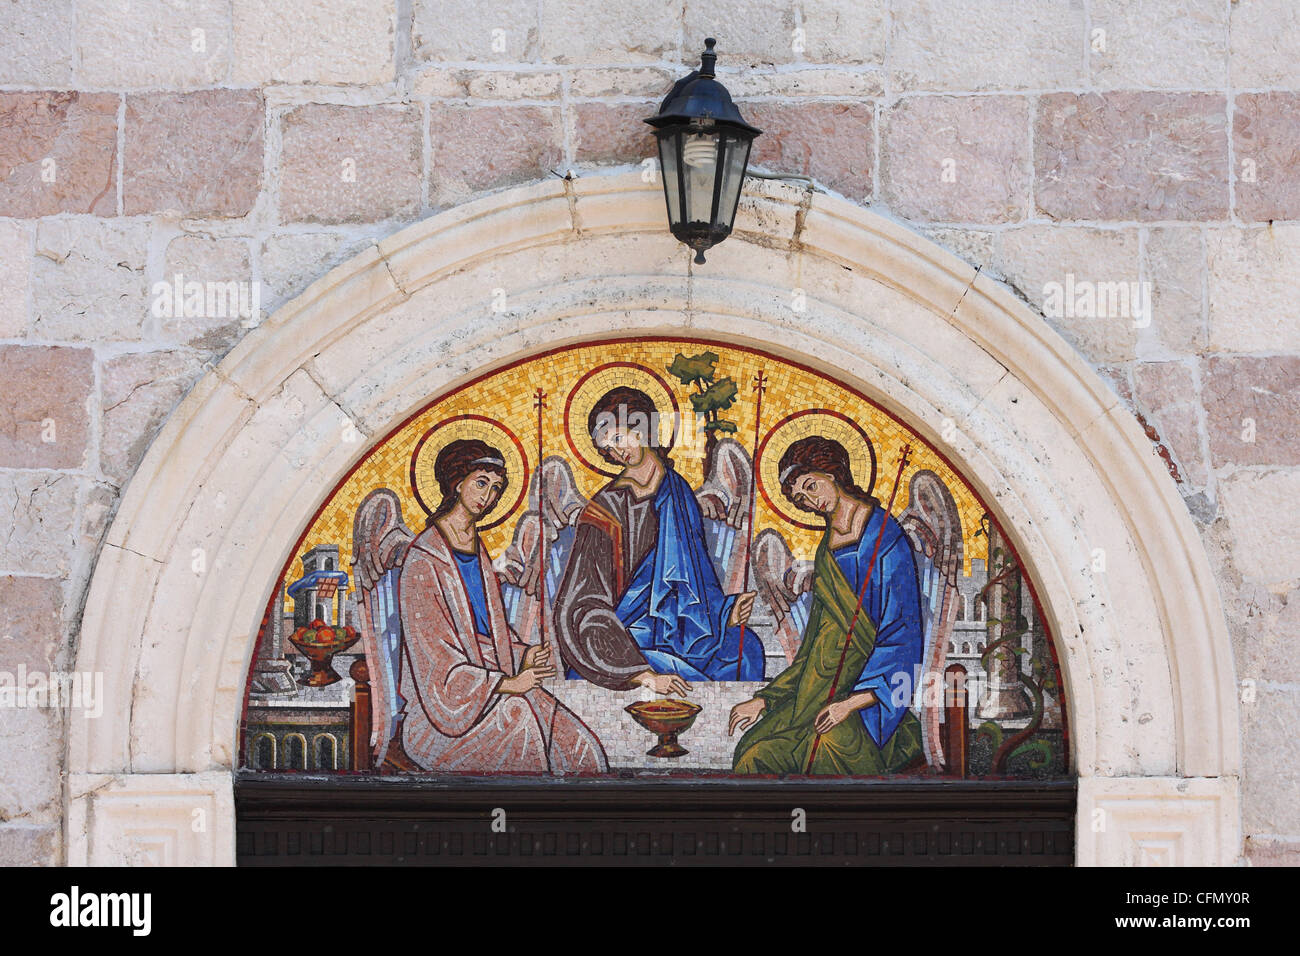 A mosaic icon of the Holy Trinity over the door of the church in old city. Budva, Montenegro - Stock Image